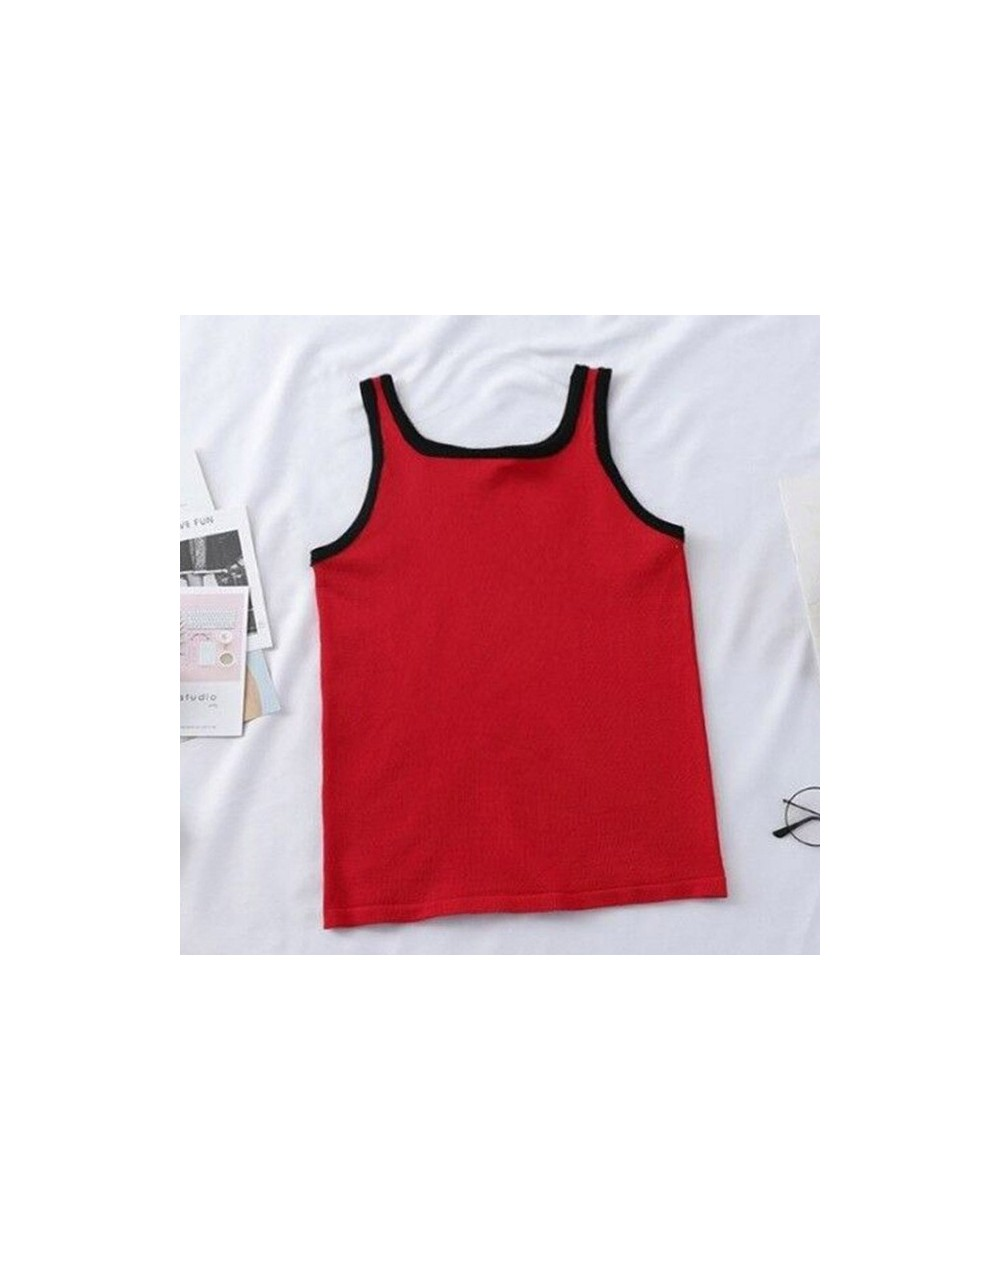 Women's Vest Korean Style Sexy Round Neck T-shirt Backless Sleeveless Color Side Short Shirt Female Summer Casual Tops 2019 ...